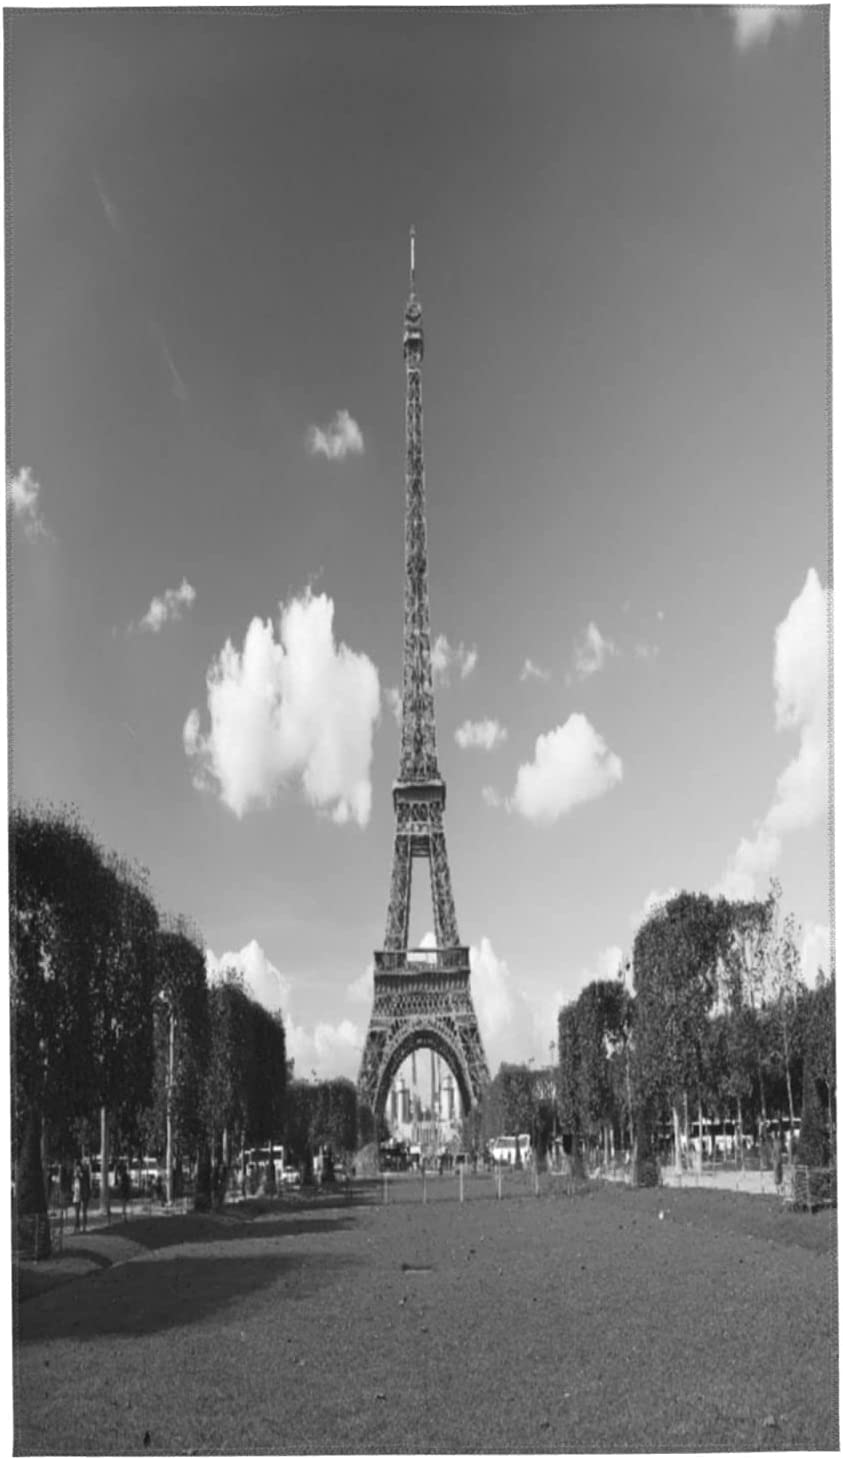 PATINISA Face Towel Set of 2 The Eiffel S Tower Paris France Spasm price in Selling and selling